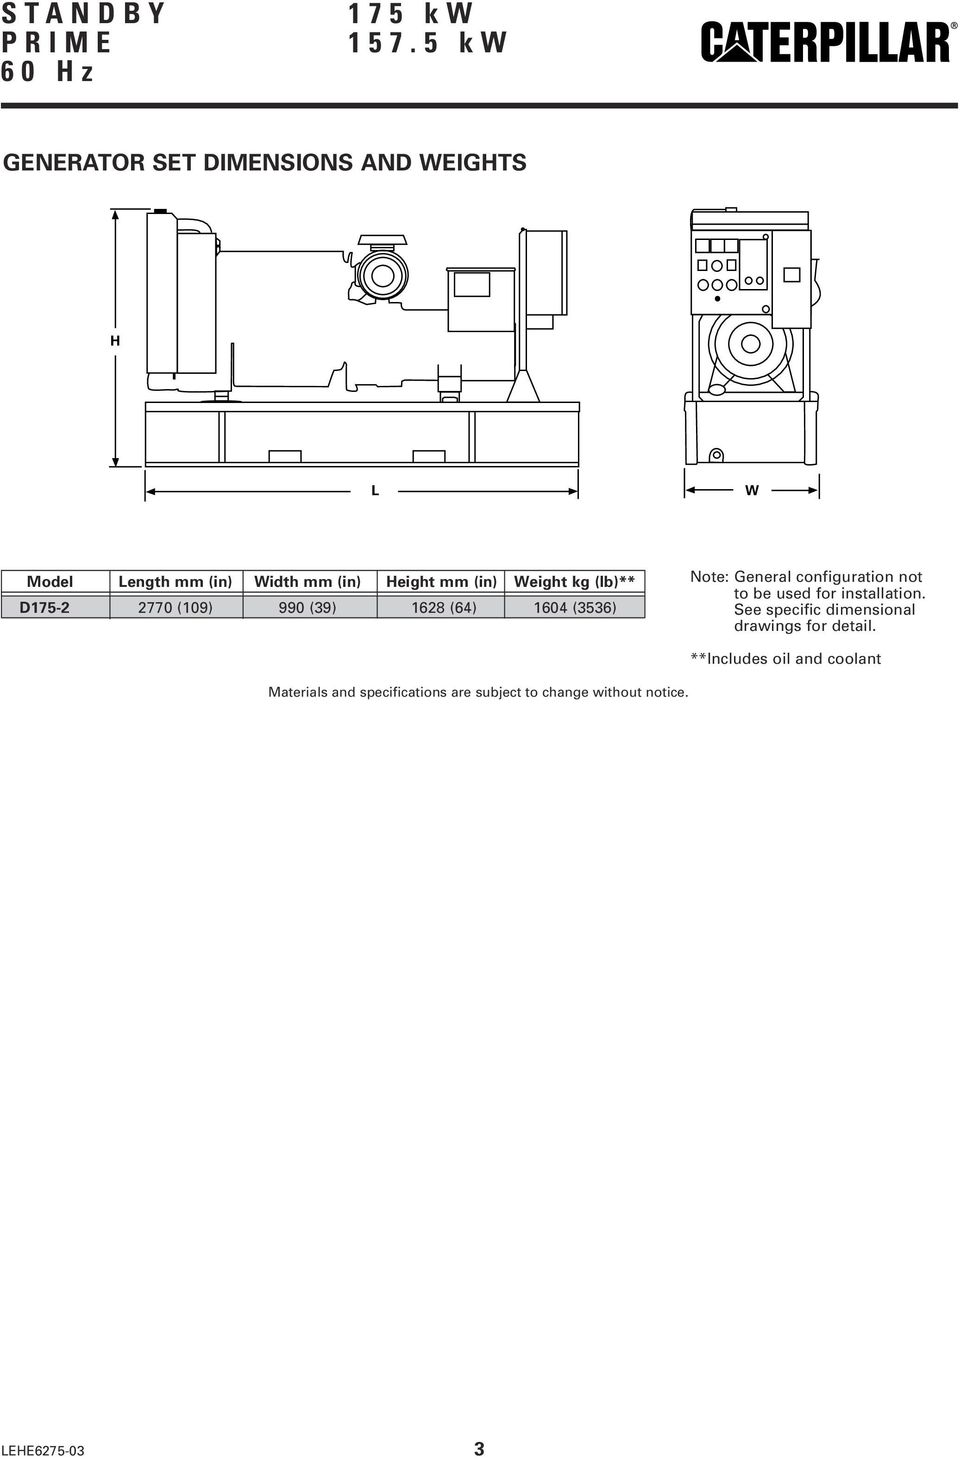 hight resolution of to be used for installation see specific dimensional drawings for detail